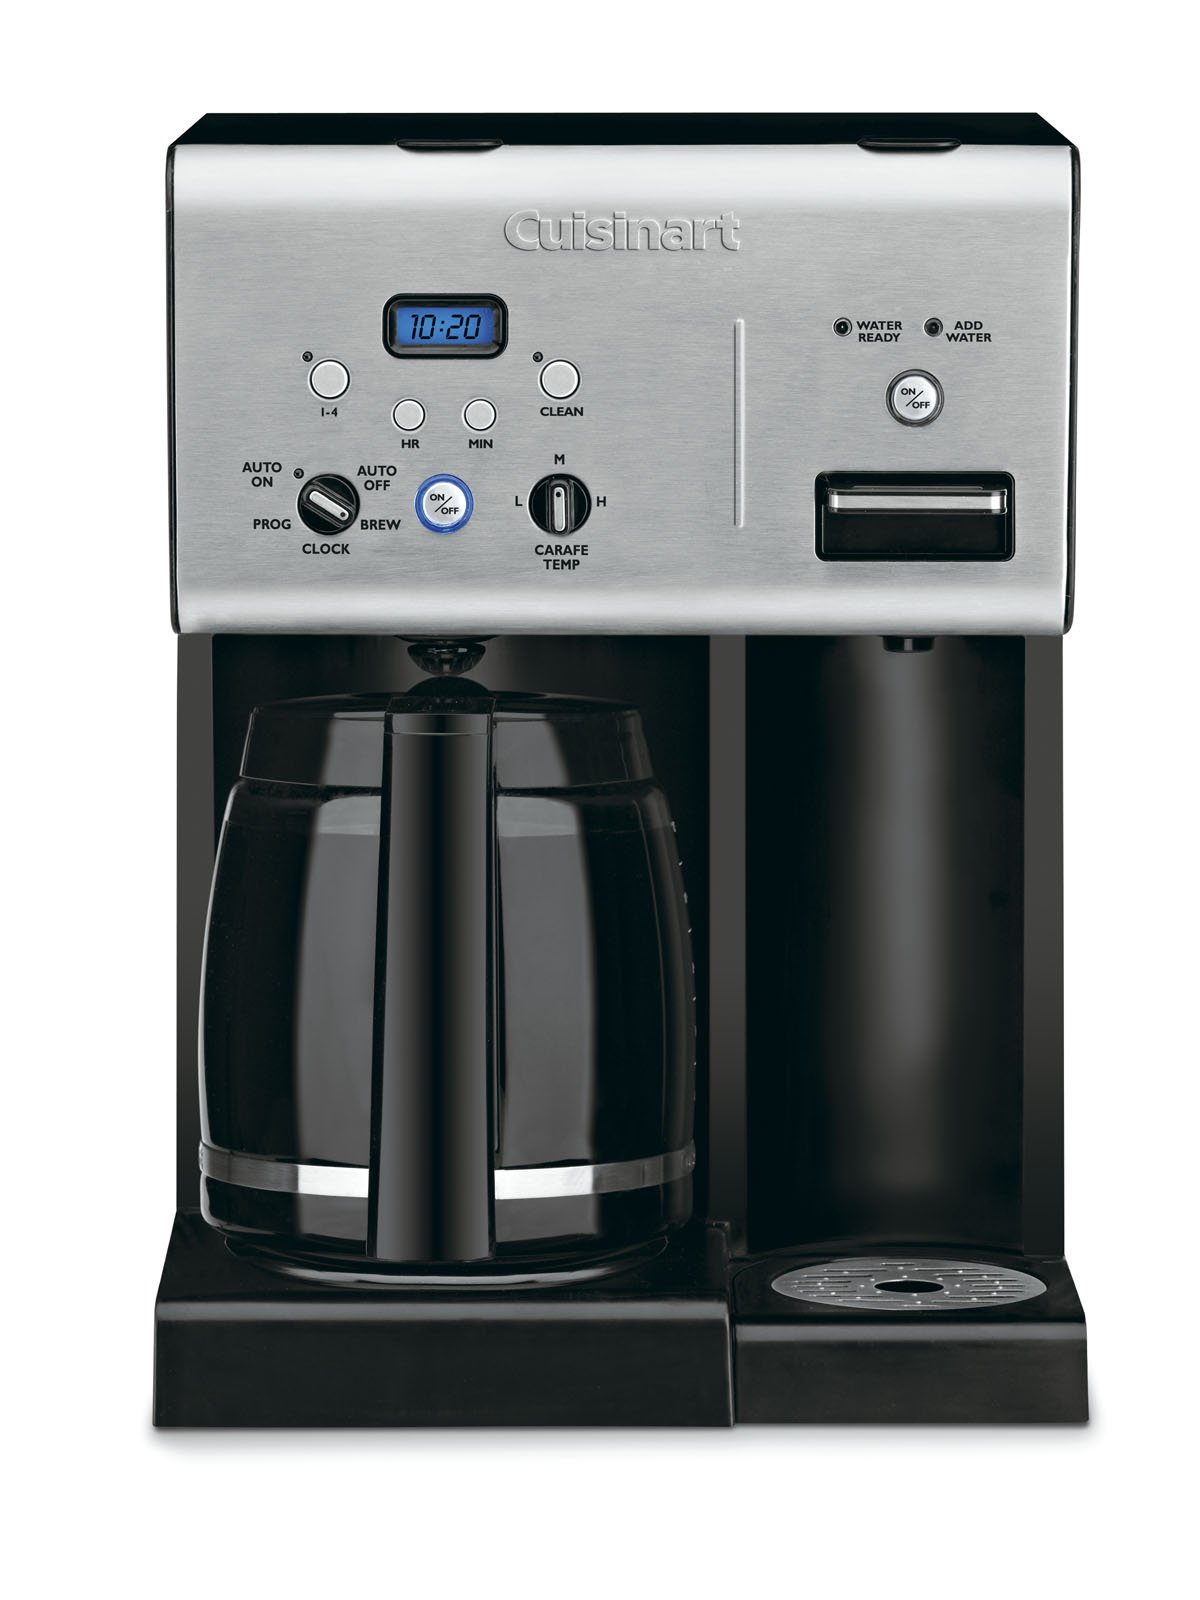 Cuisinart CHW-12 Coffee Plus 12-Cup Programmable Coffeemaker with Hot Water System, Black/Stainless by Cuisinart (Image #1)